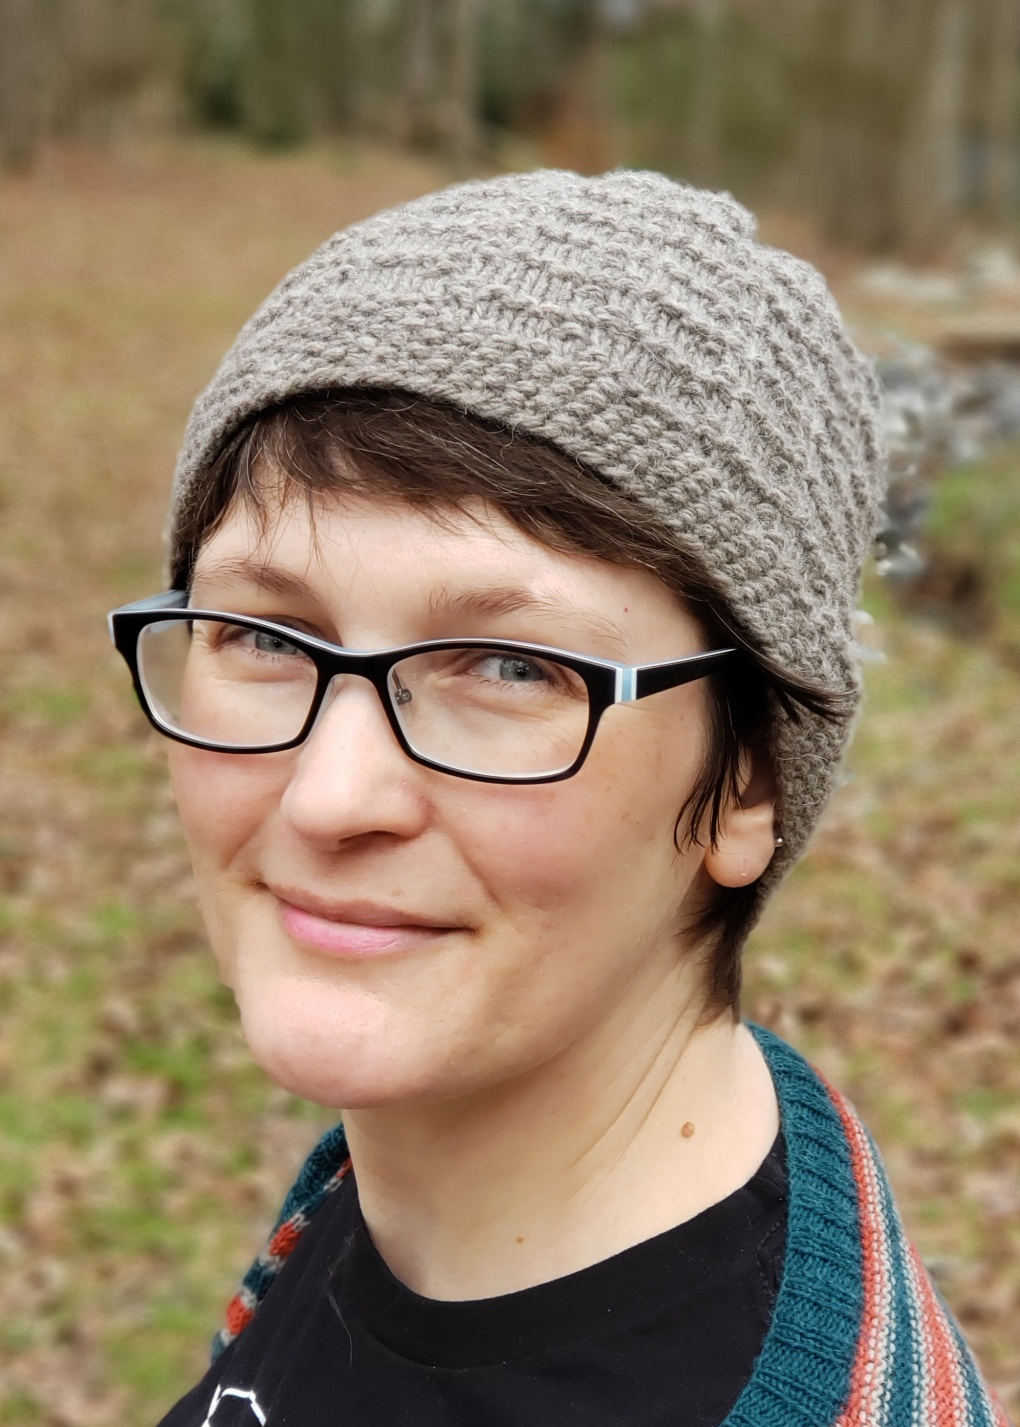 Photo of the designer looking sideways into the camera and wearing a handknit hat and sweater.